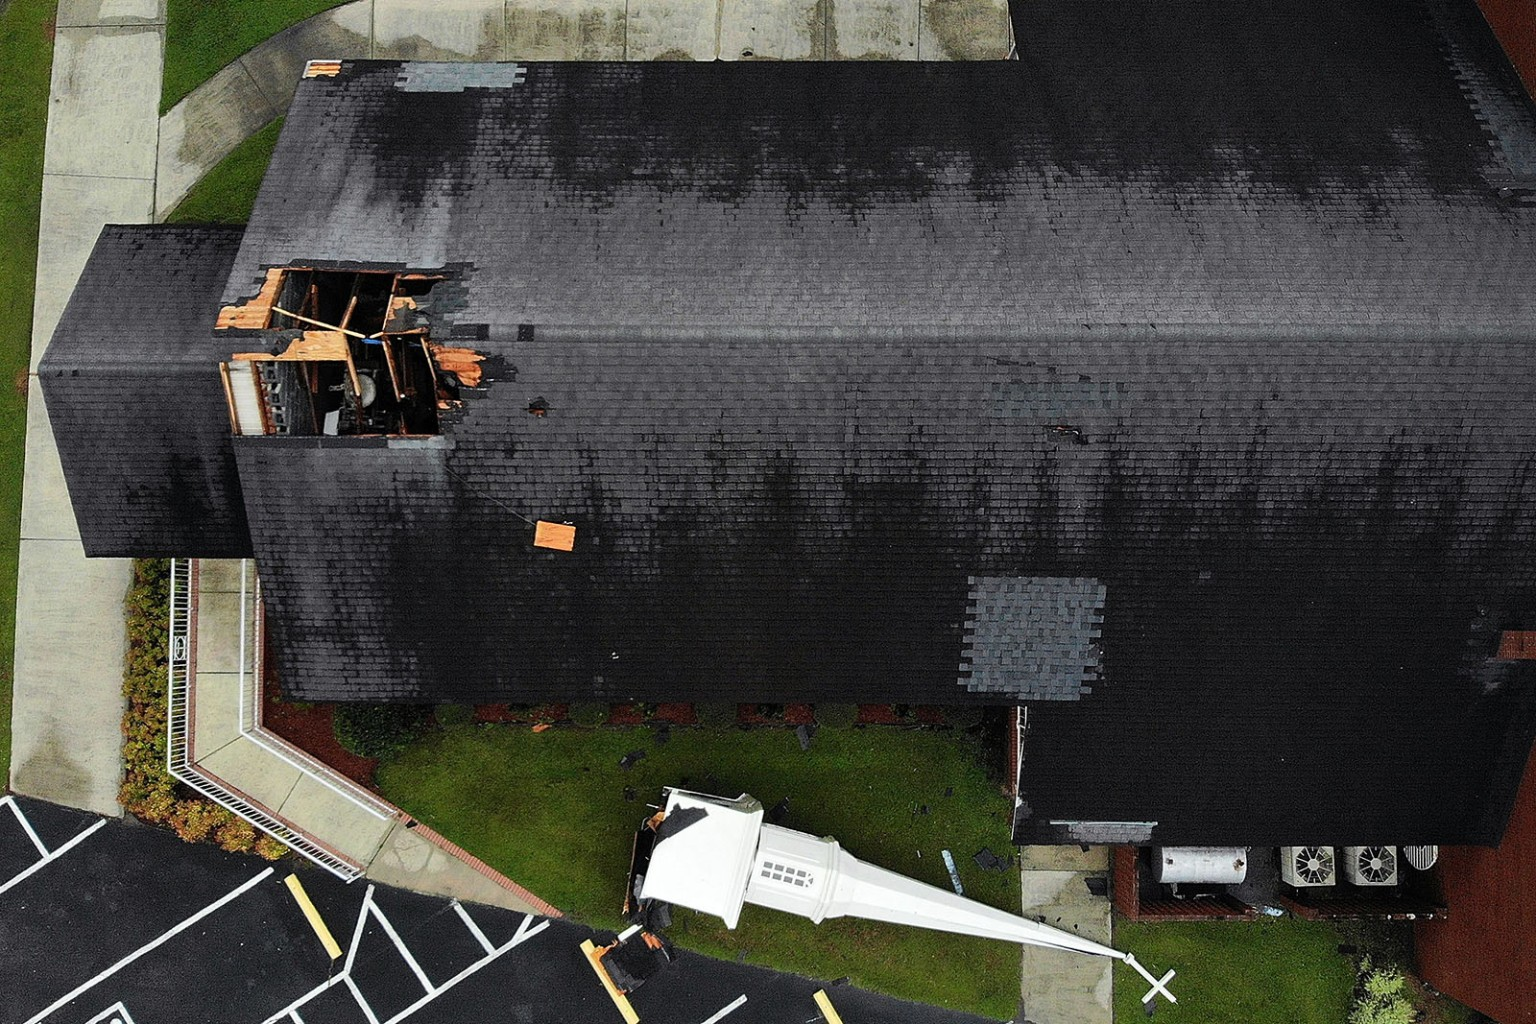 A steeple rests next to the Elah Baptist Church after being blown off by the strong winds of Hurricane Florence in Leland, North Carolina, on Sept. 16. Mark Wilson/Getty Images